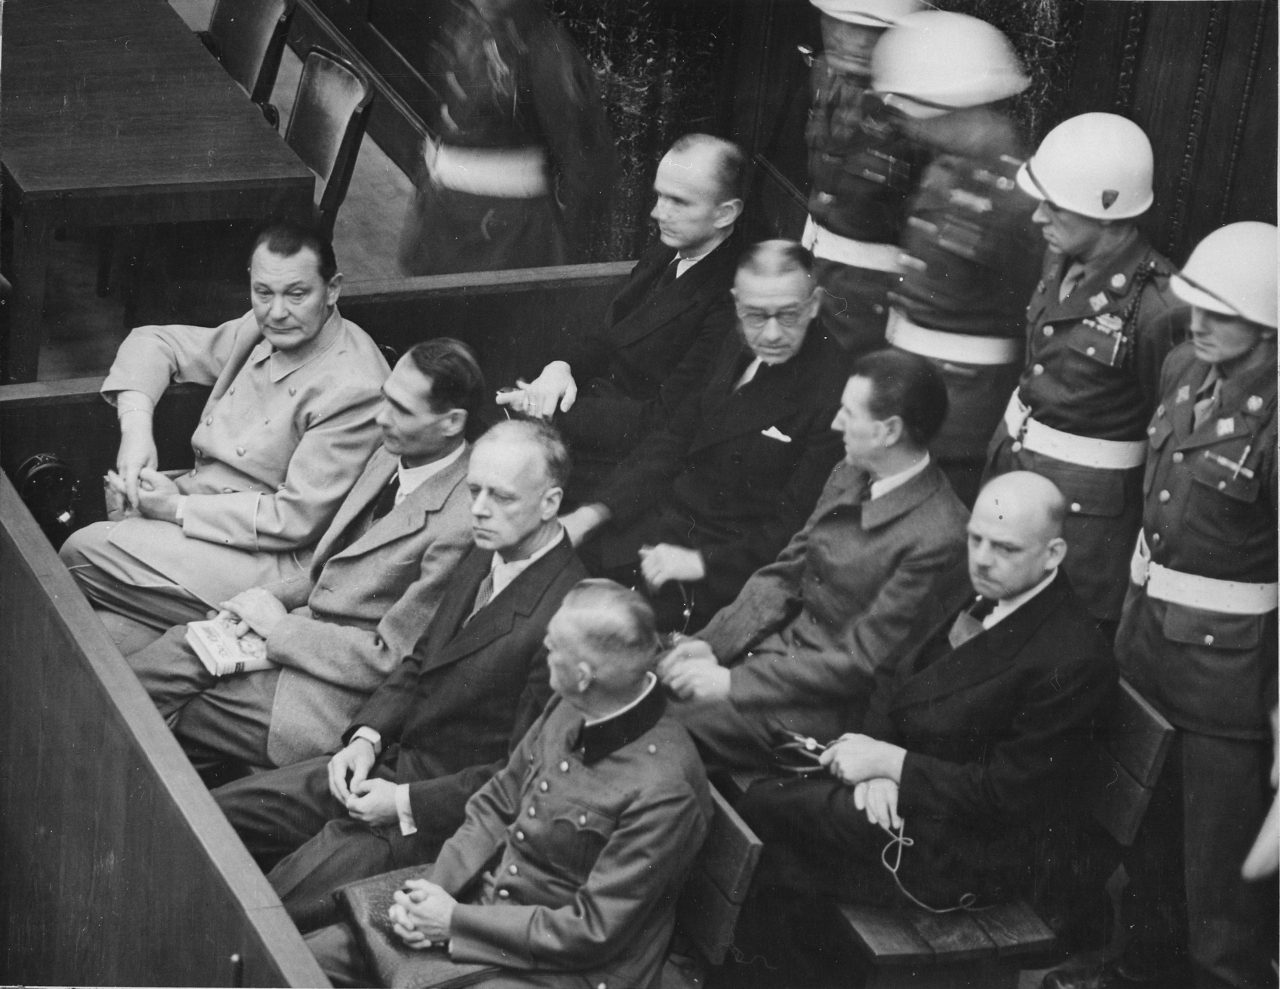 70TH ANNIVERSARY OF THE NUREMBERG TRIALS – PHILIPPE SANDS